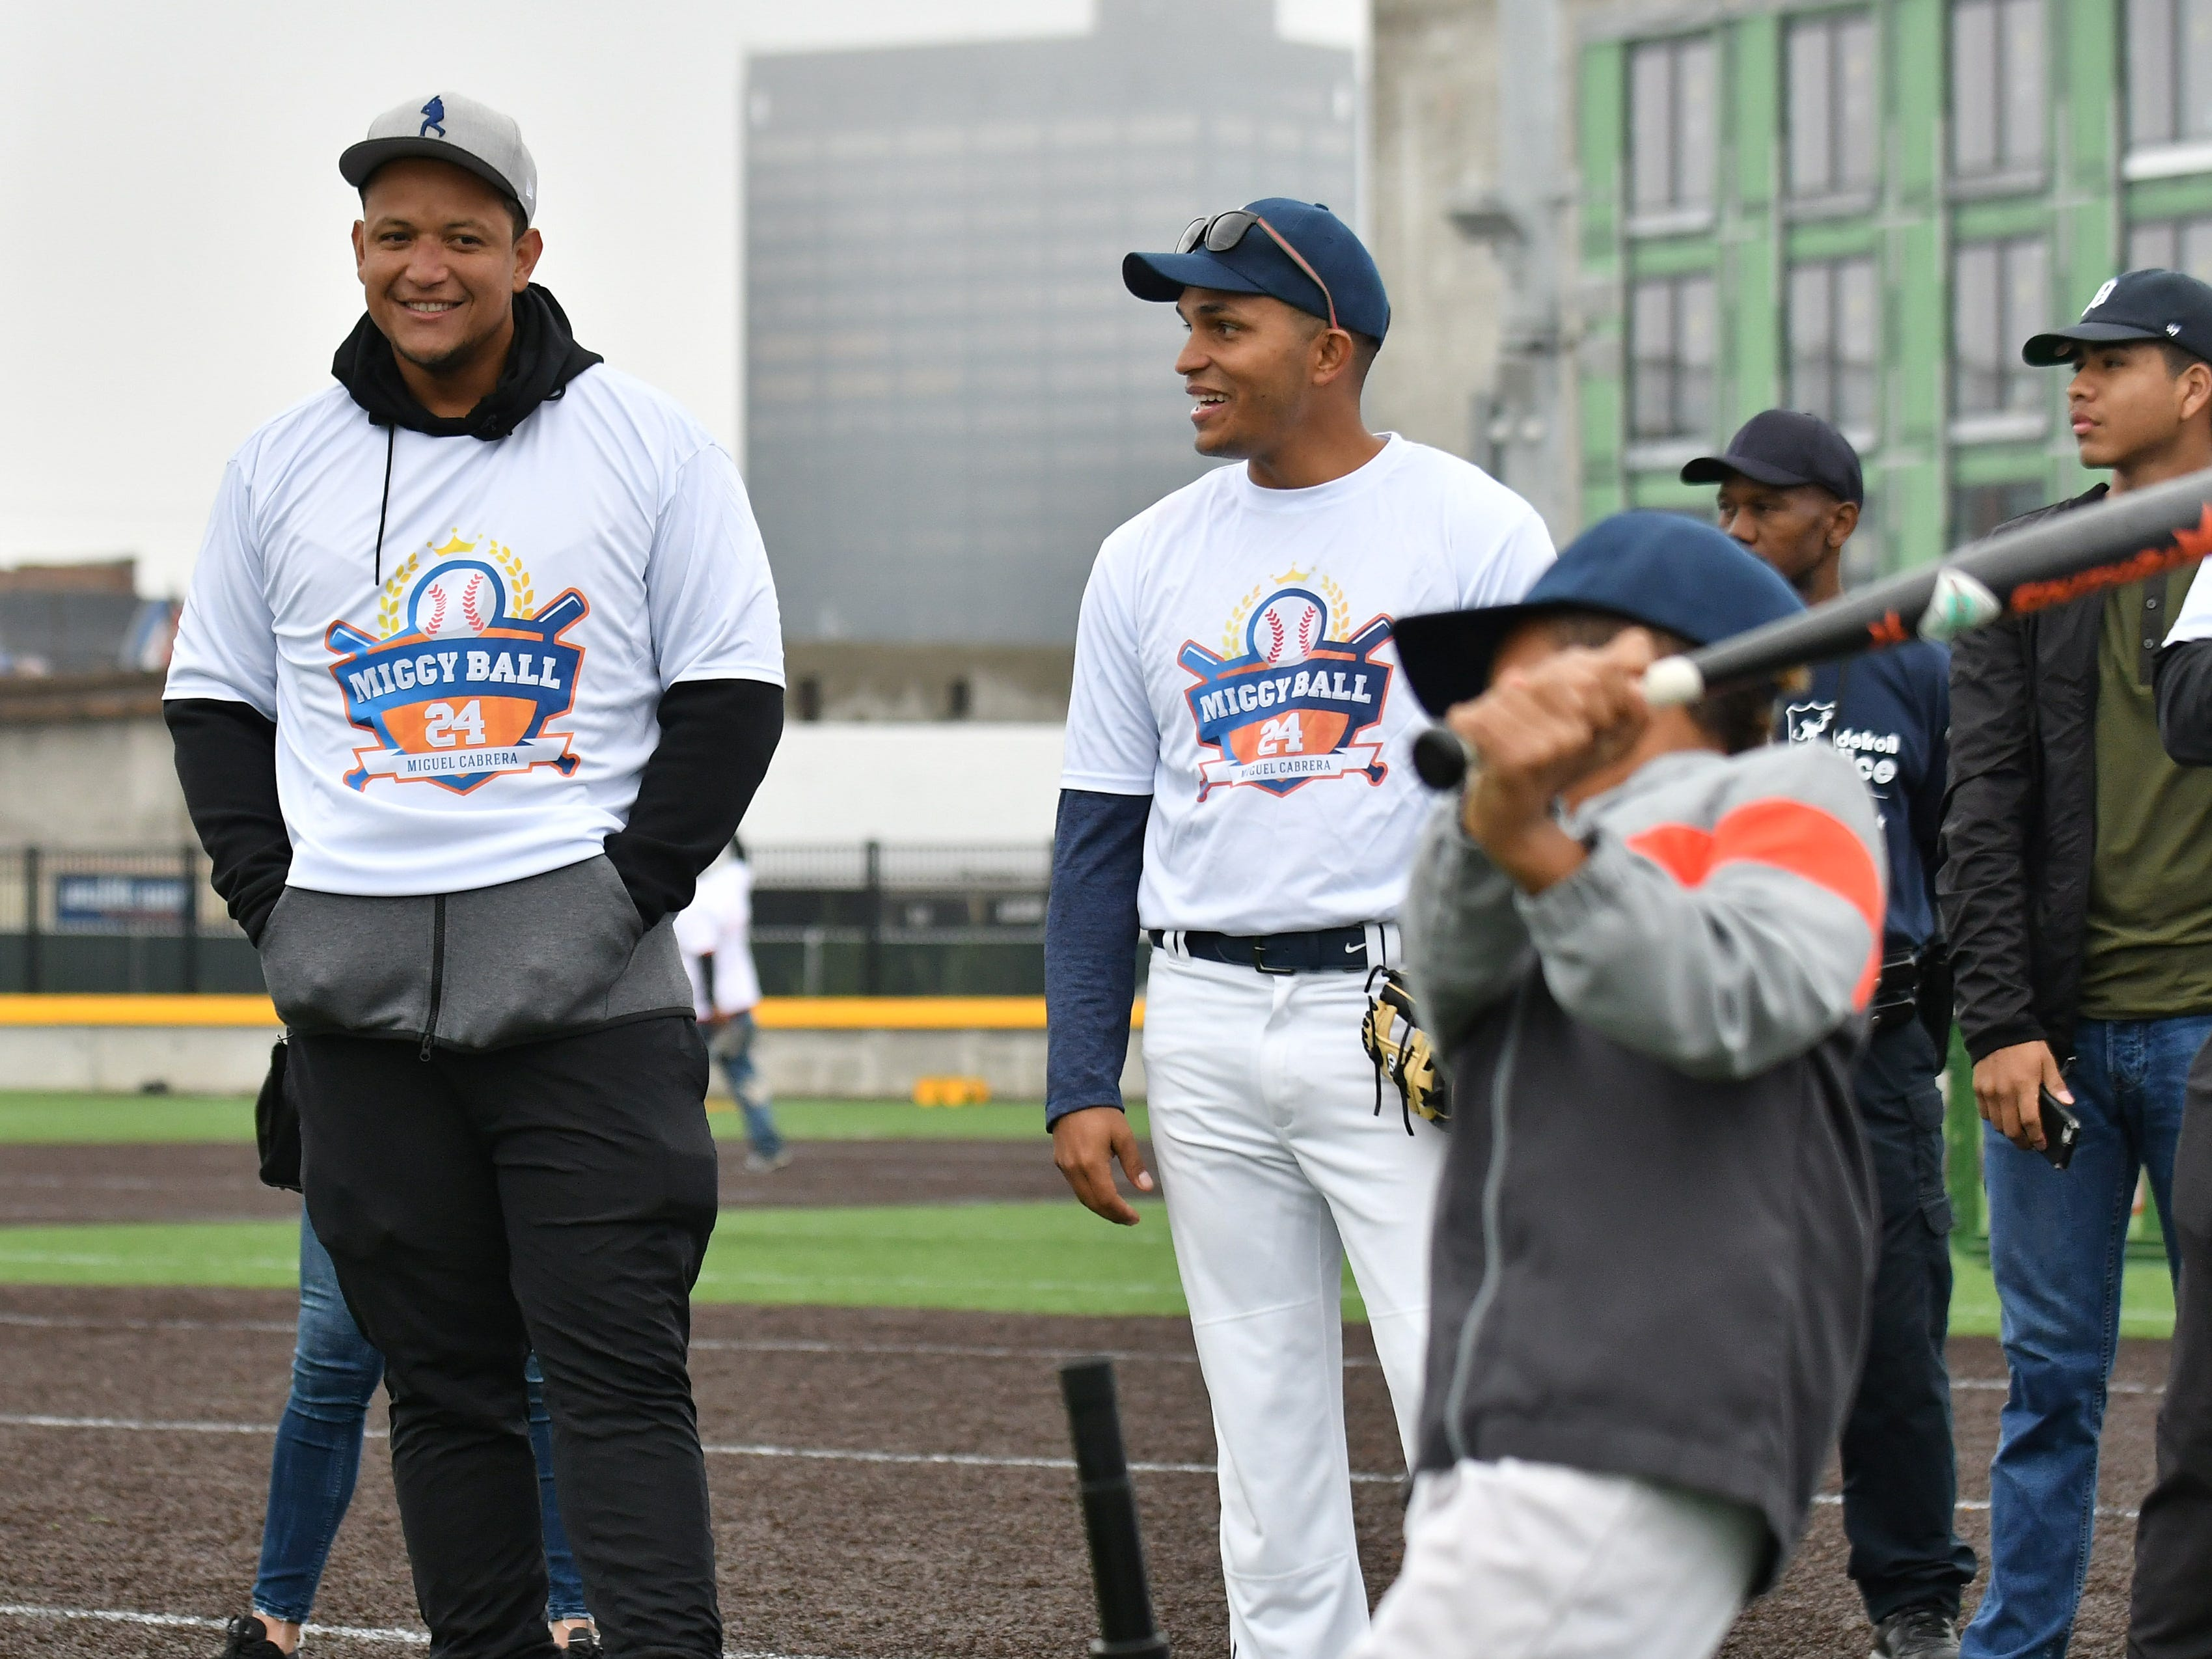 Tigers' Miguel Cabrera watches the Brandon Williams, right, bat with Elison Elias, center, one of the event organizers at the Miggy Ball 24 event.